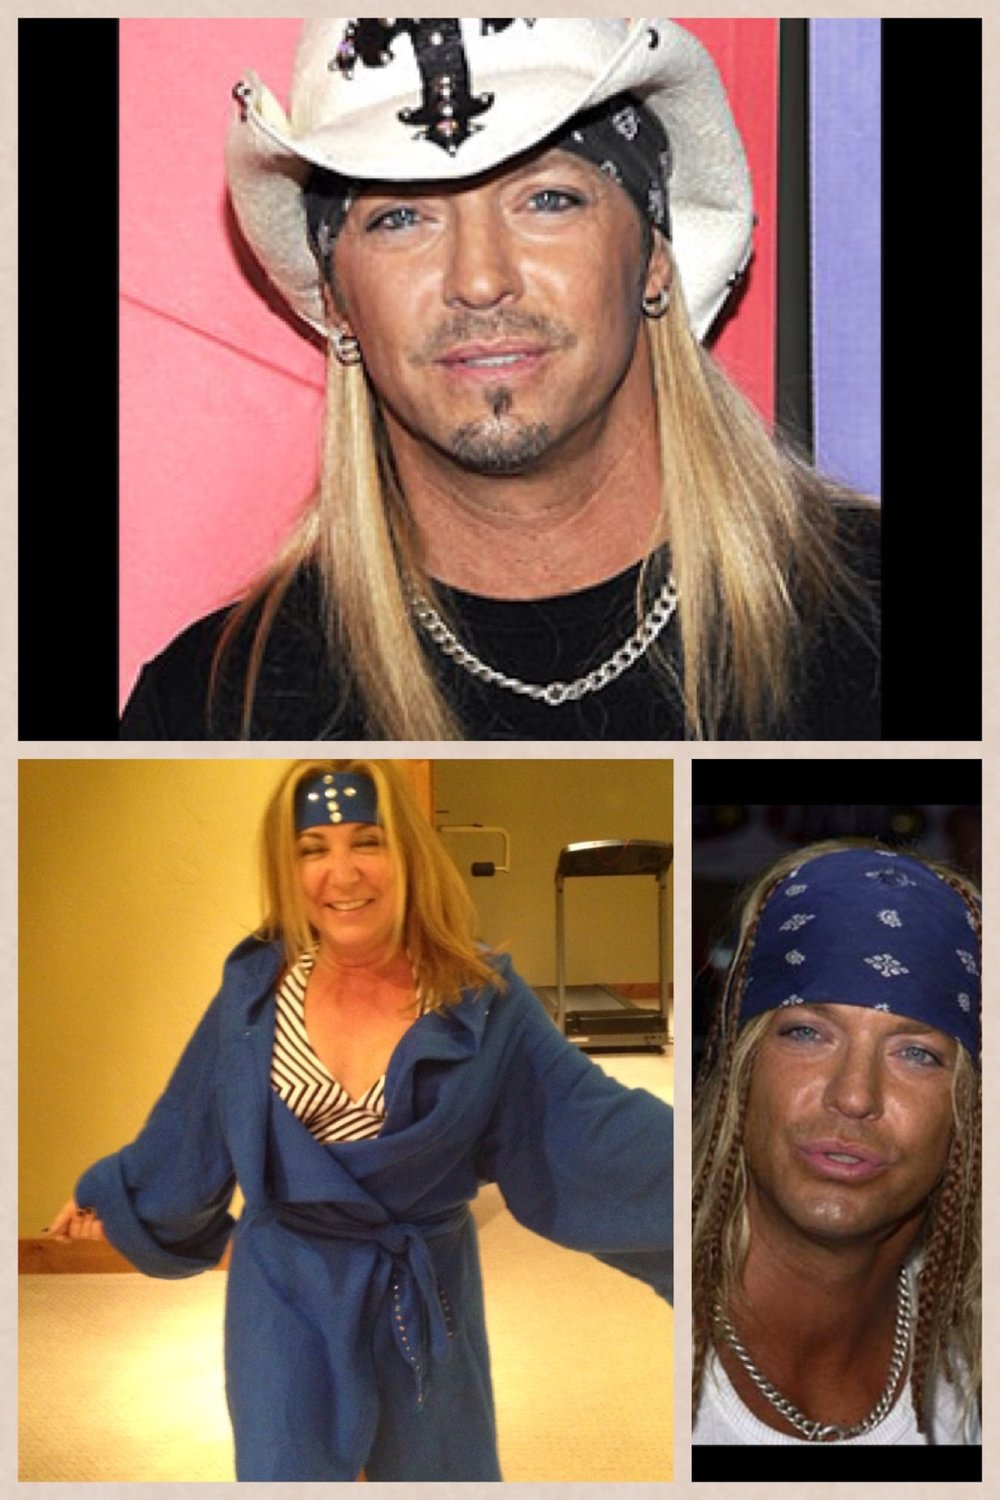 Terry as Brett Michaels in the Snuggle competition